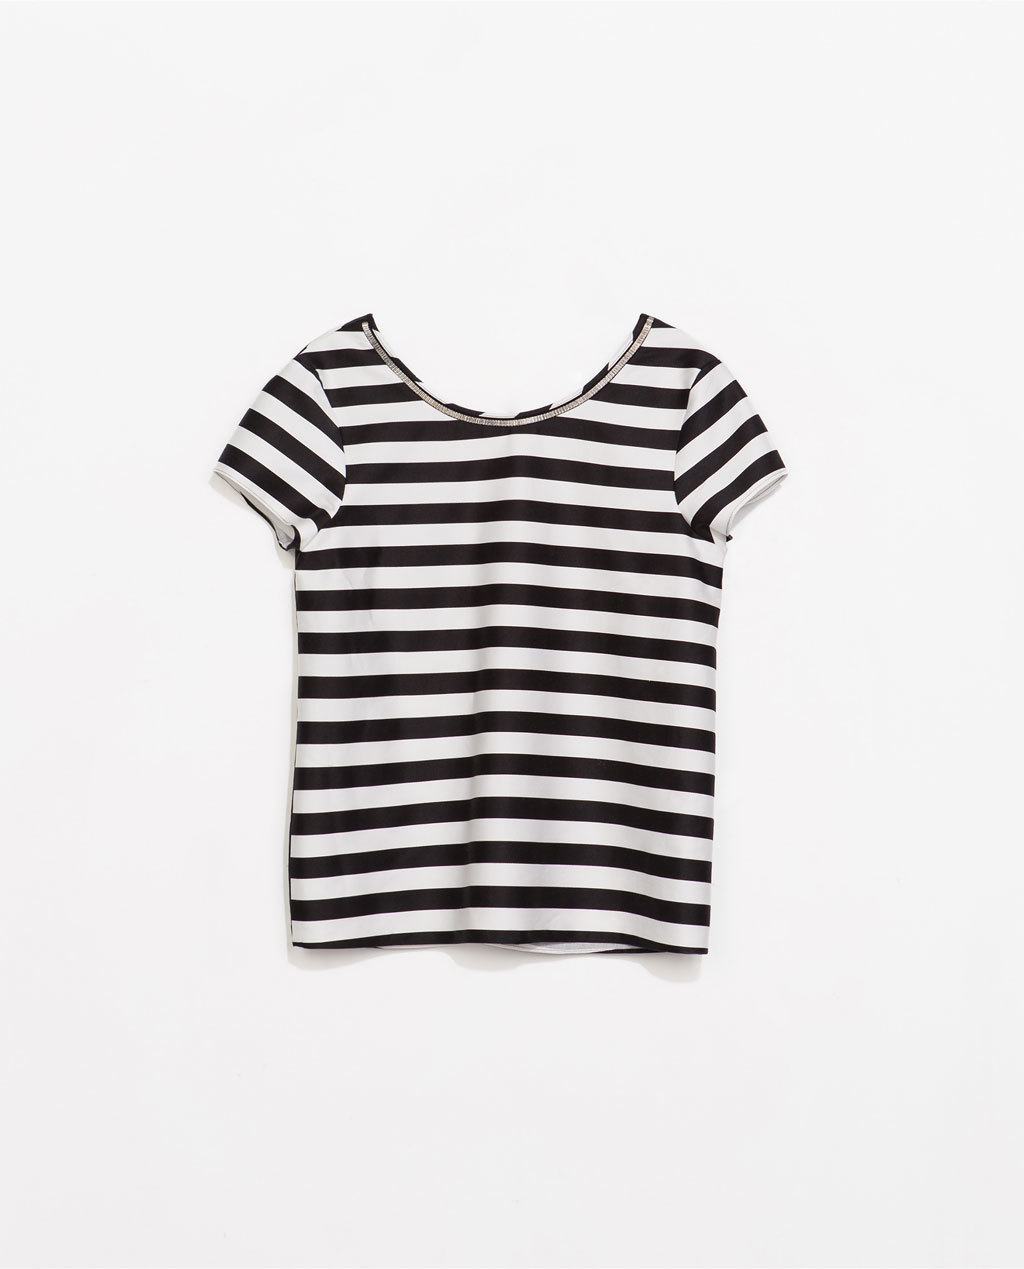 Striped Top - neckline: round neck; pattern: horizontal stripes; style: t-shirt; secondary colour: white; predominant colour: black; occasions: casual, creative work; length: standard; fibres: cotton - stretch; fit: straight cut; sleeve length: short sleeve; sleeve style: standard; pattern type: fabric; pattern size: standard; texture group: jersey - stretchy/drapey; season: s/s 2014; trends: monochrome